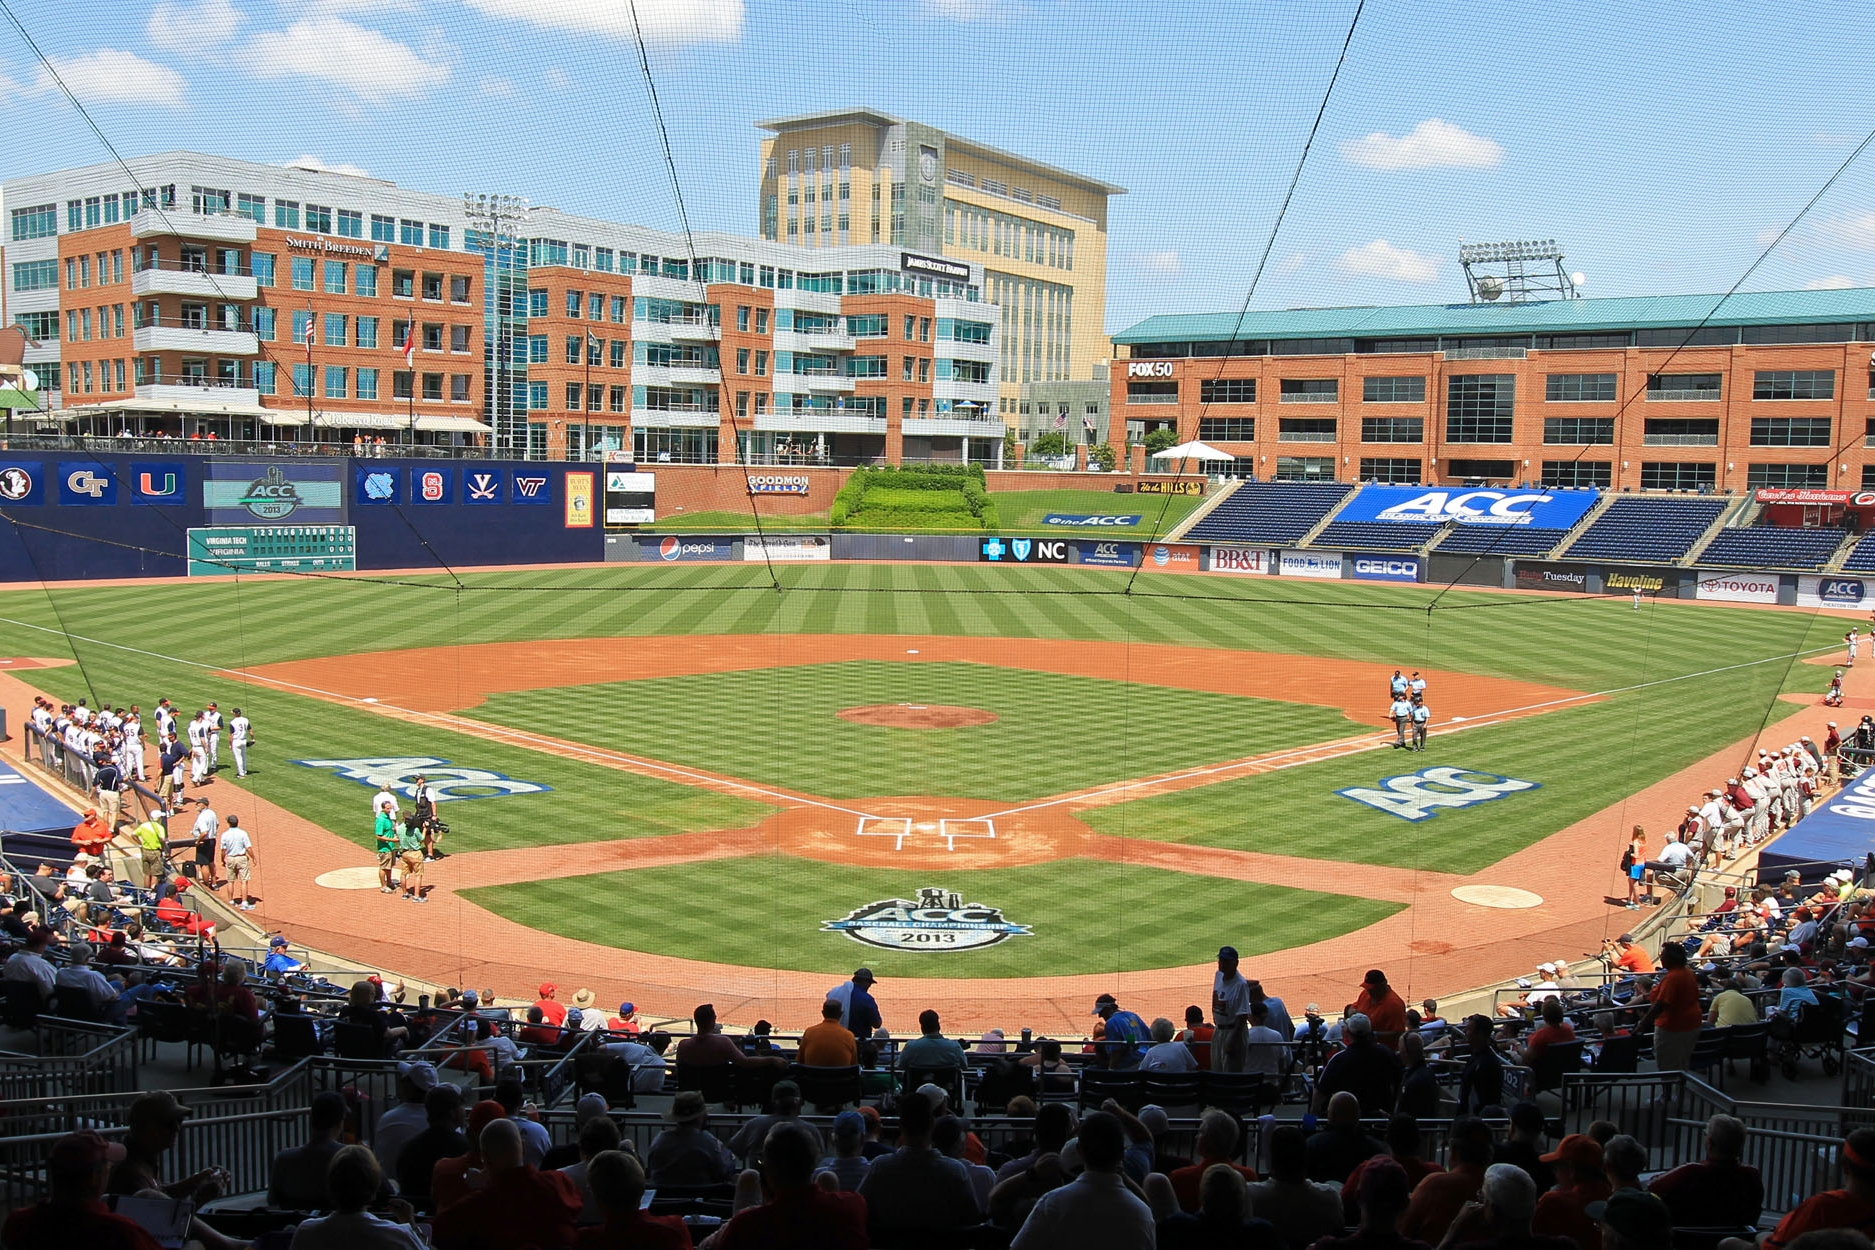 DURHAM BULLS ATHLETIC PARK - Iconified in cinematic history with Bull Durham (1988), this championship-winning minor league baseball team is one of Durham's crown jewels. And 2017 saw one of the Bulls' best seasons with their sweep of the minor league championships (including the Triple-A National Championship). Attending a Bulls game doesn't just promise good sports, but a fun, laid-back time that captures everything to love about attending a baseball game—even fireworks at the end of many home games.